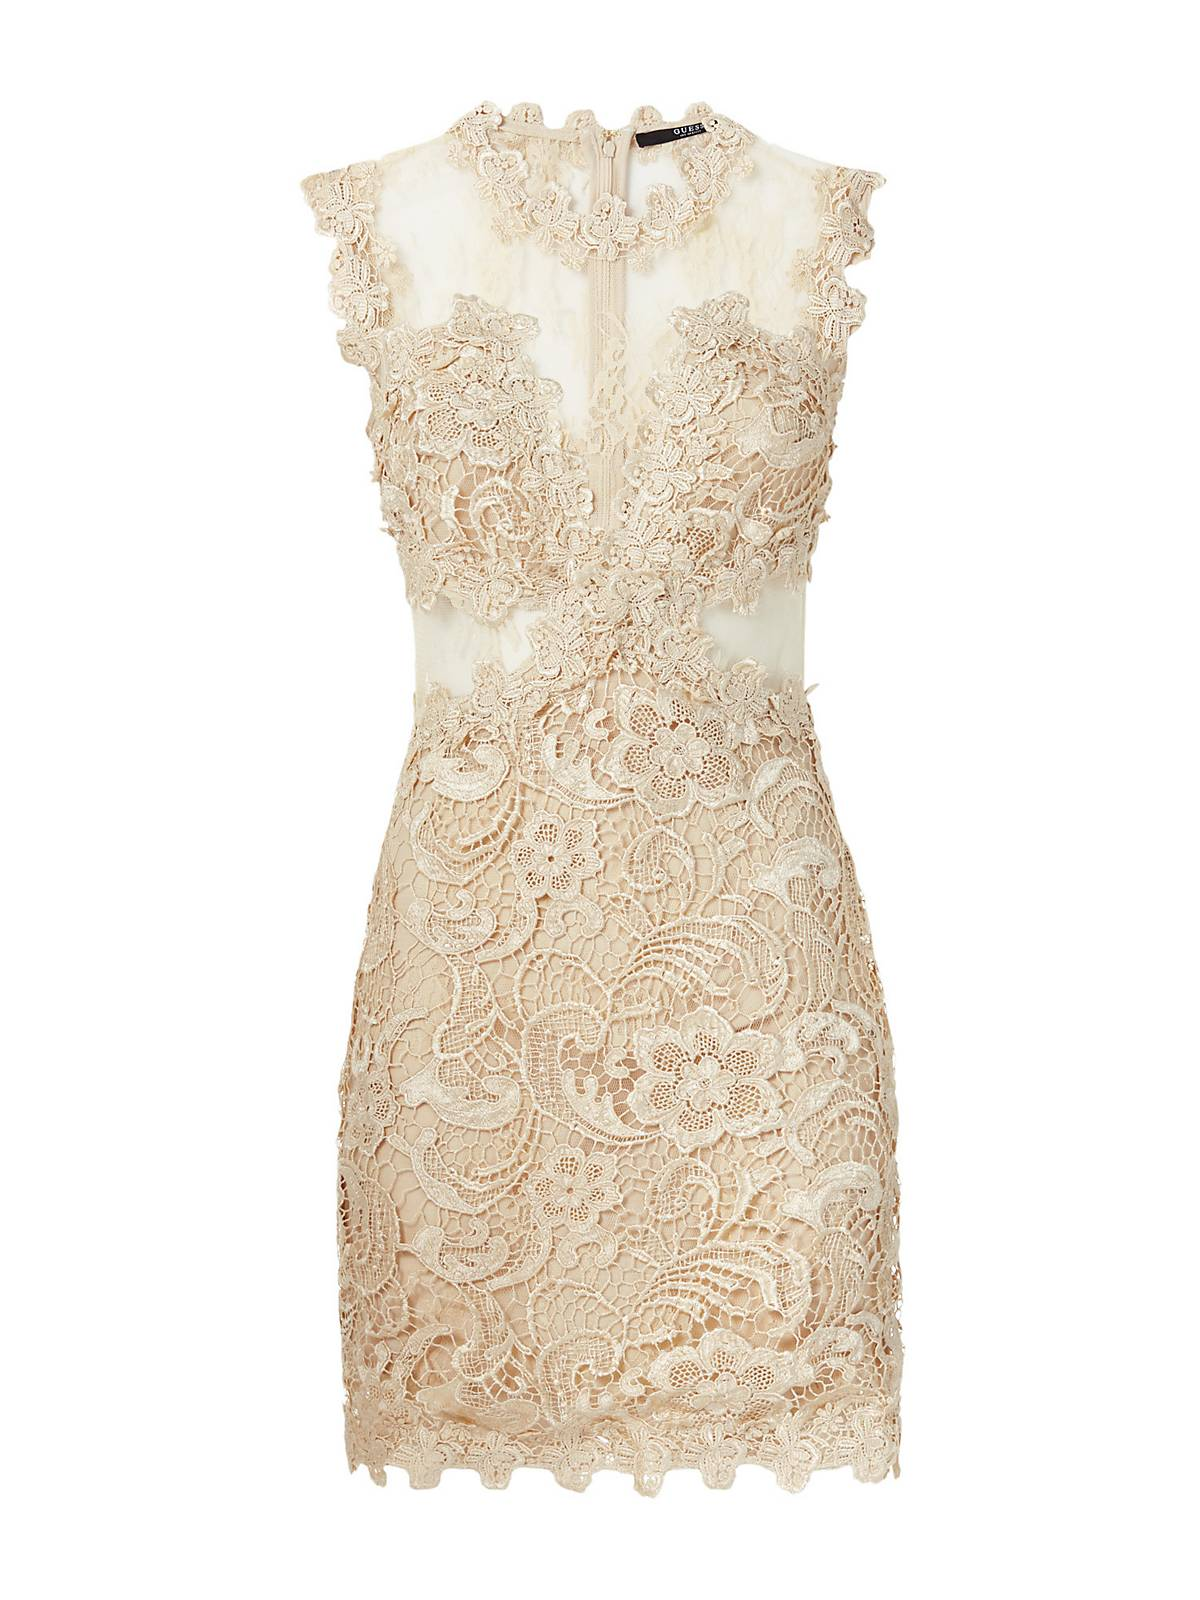 Guess Transparent Lace Dress At 285 Love The Brands